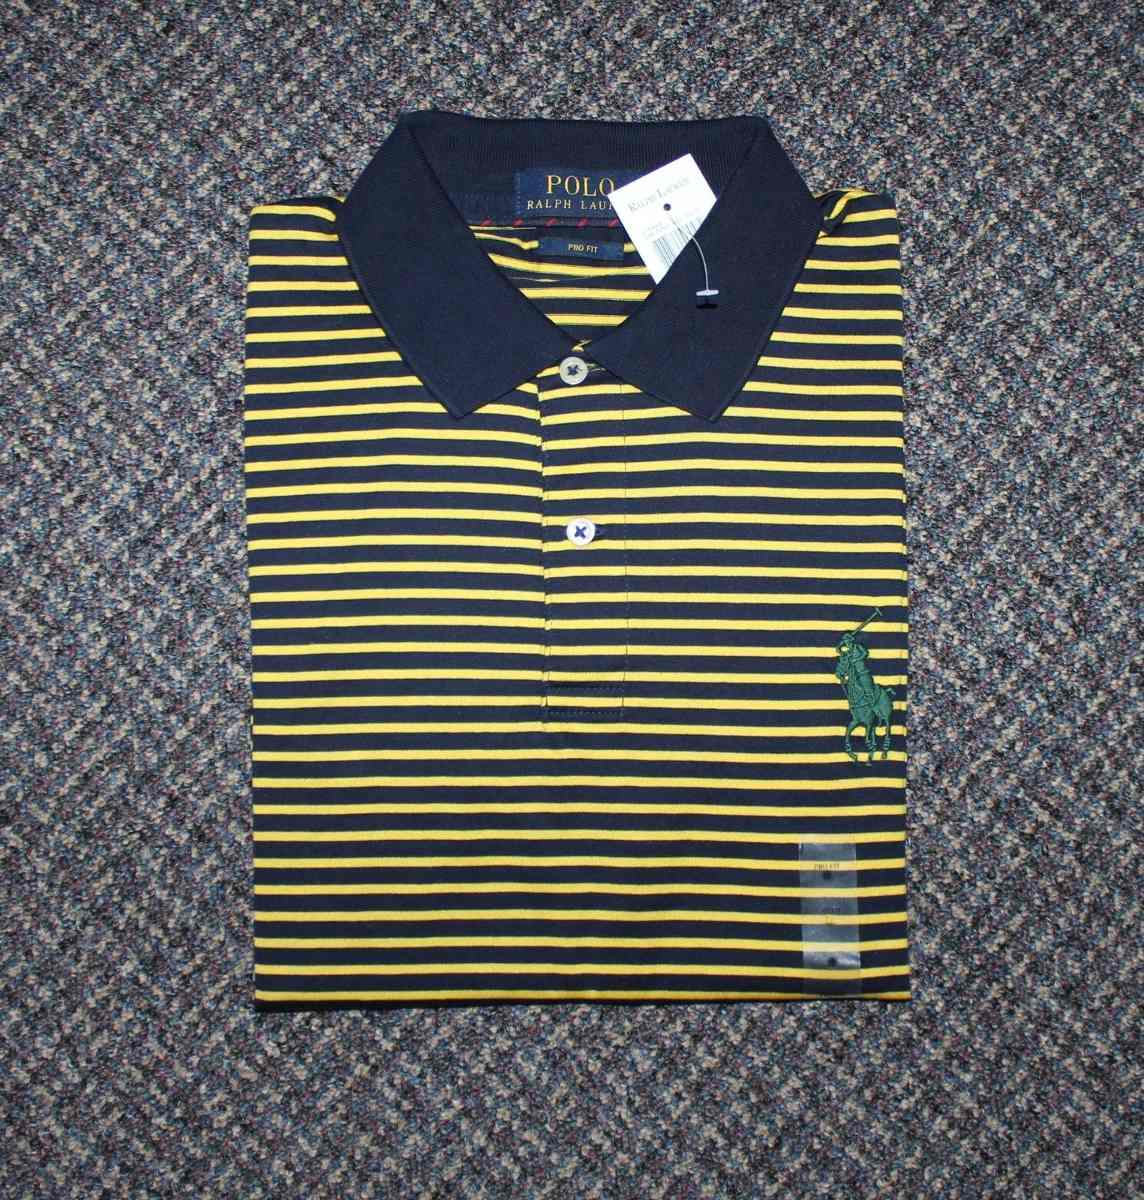 ... Camisa Polo Ralph Lauren Big Pony Original ...